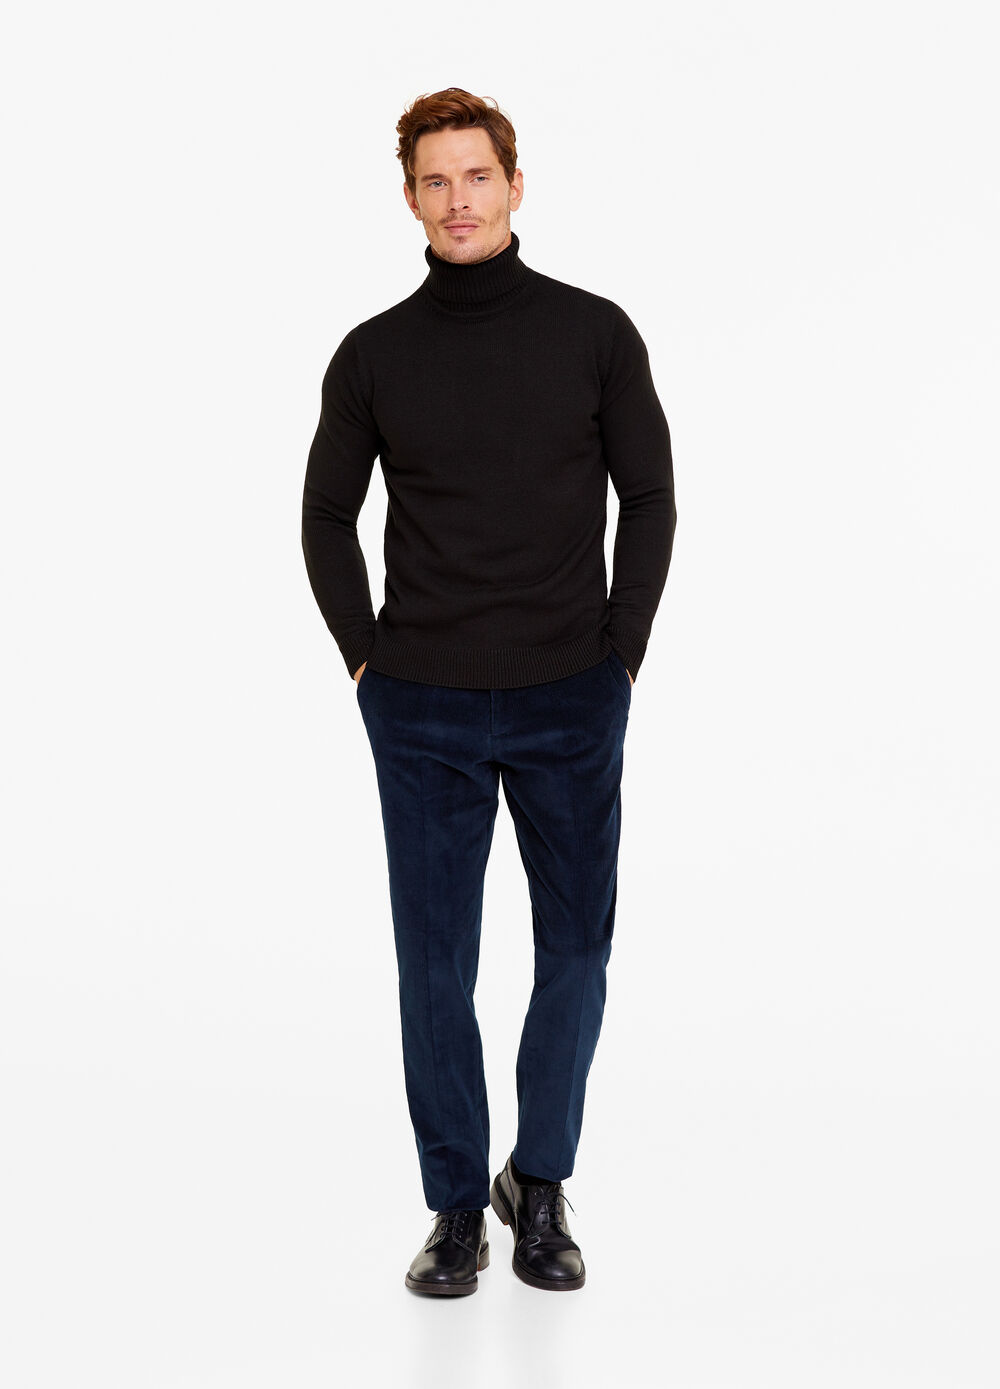 Solid colour pullover with high neck